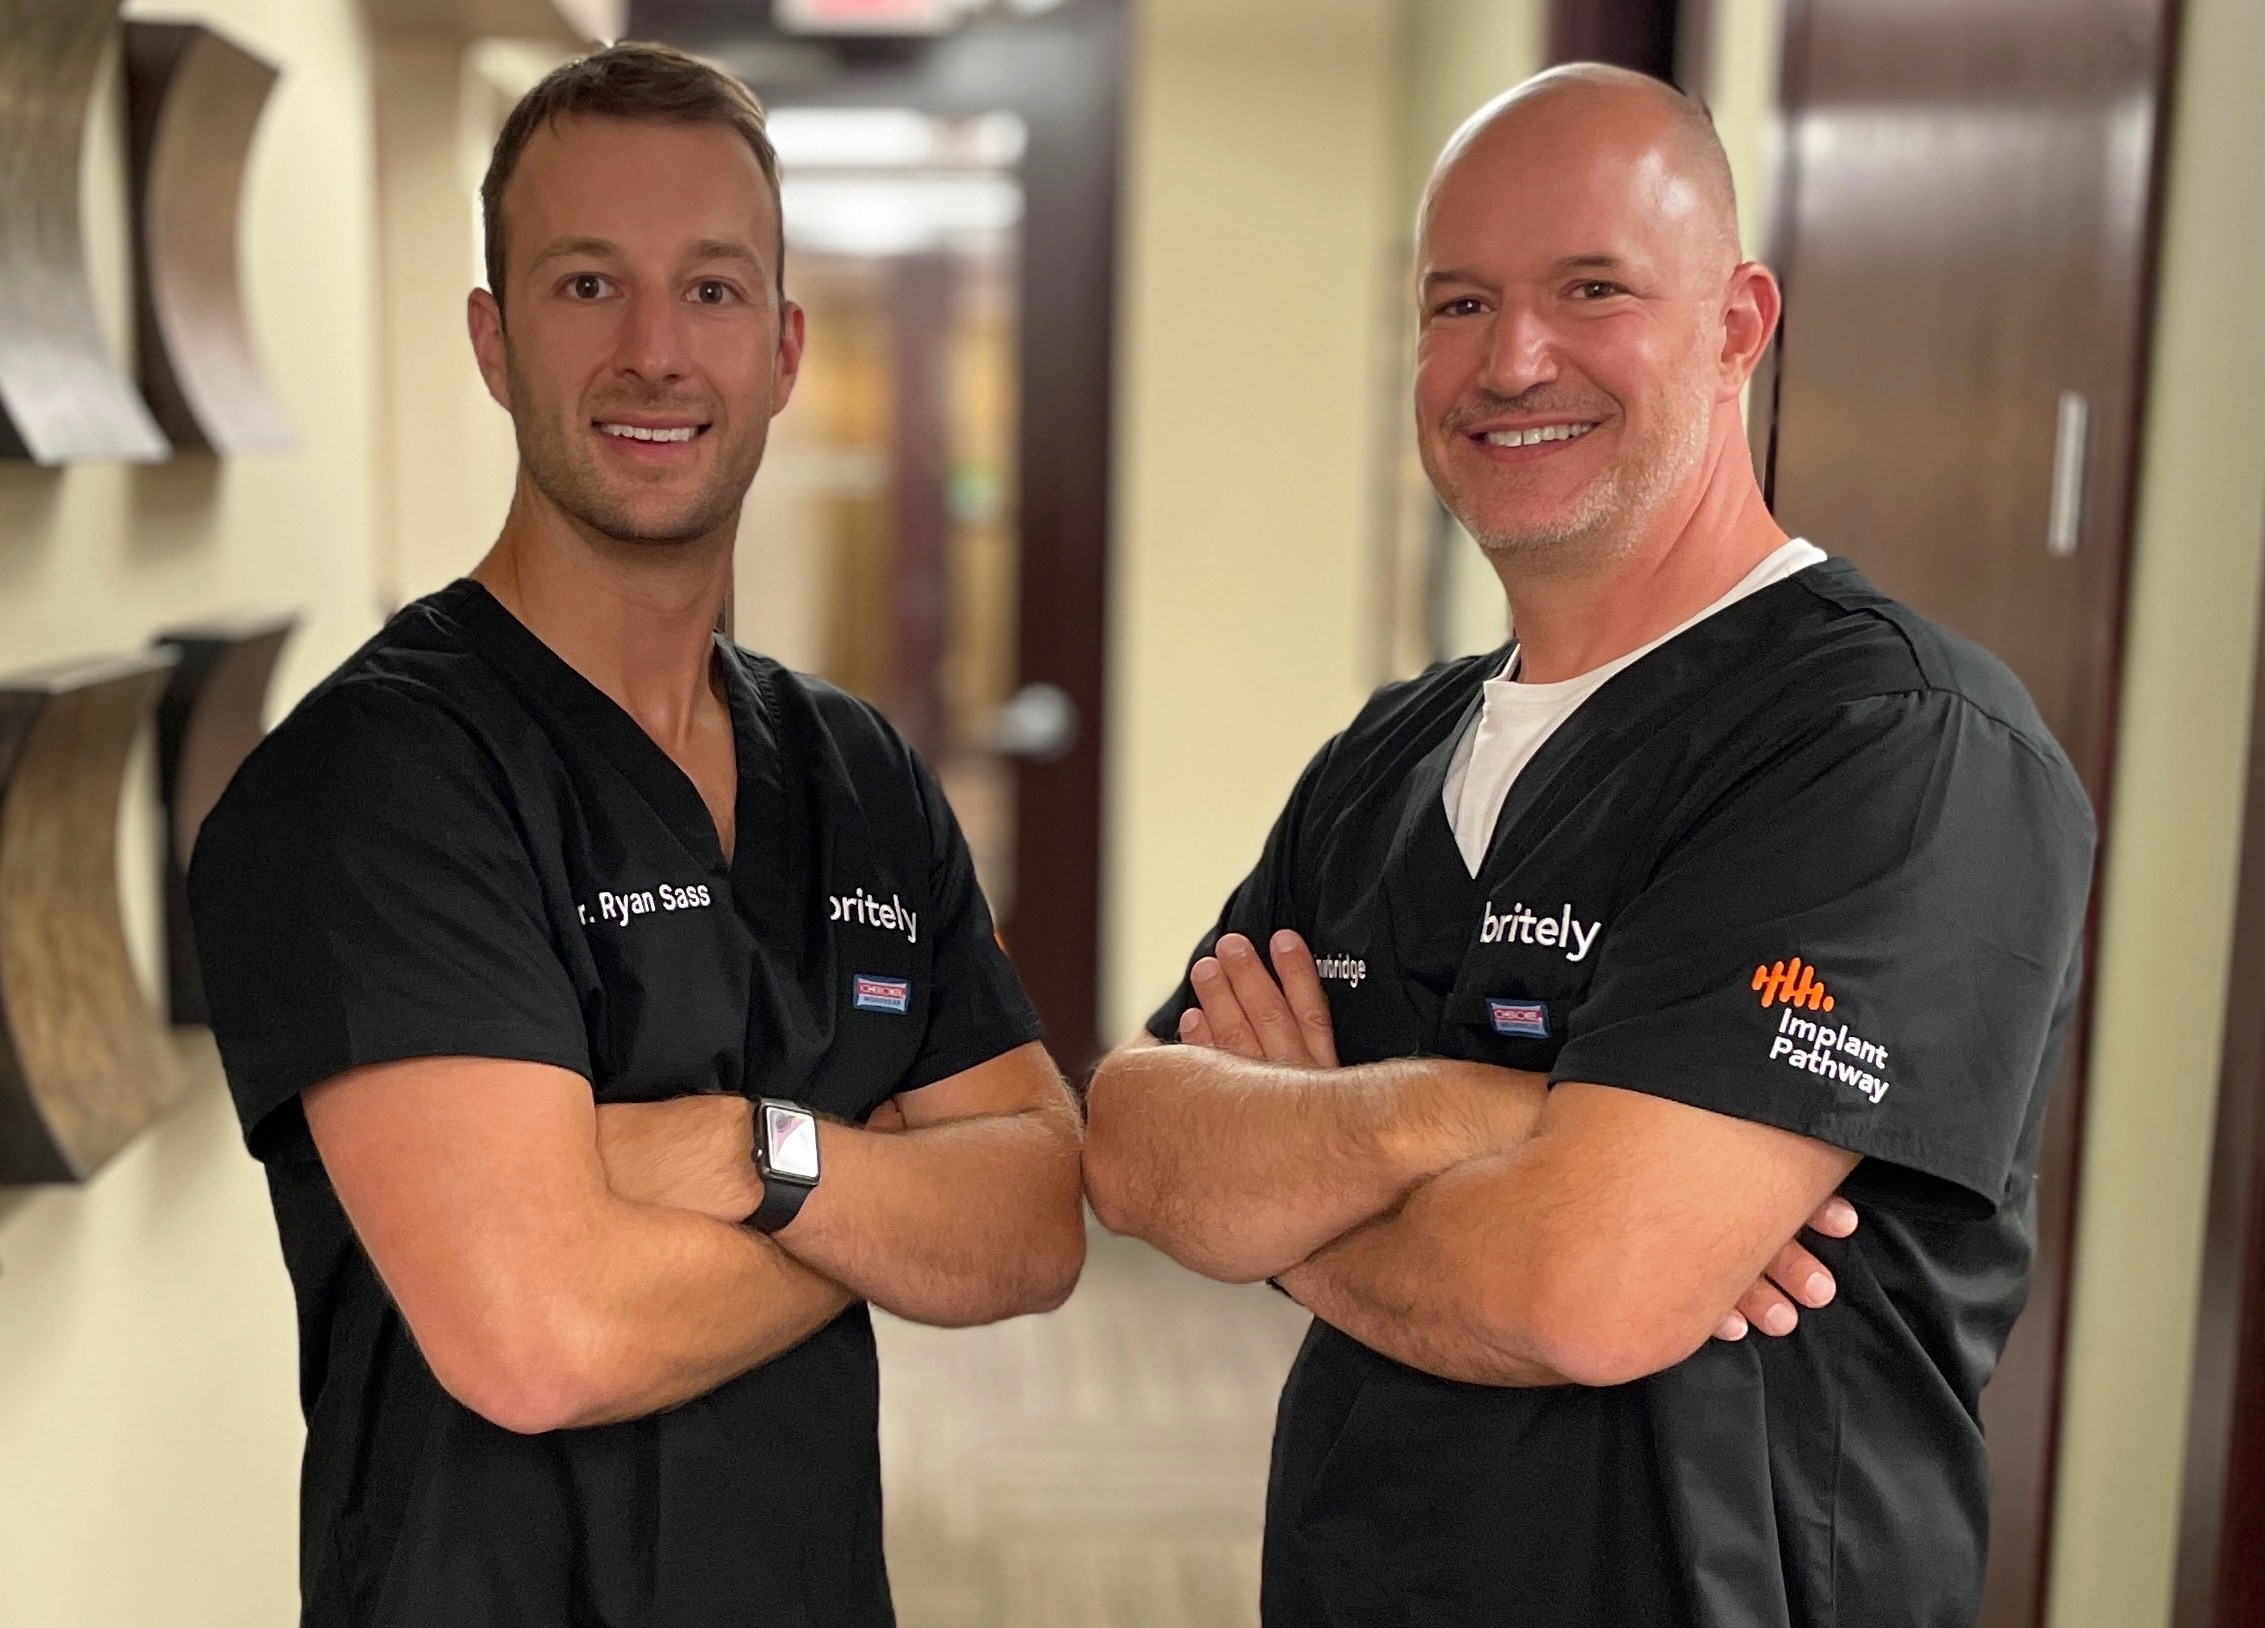 Dr. Trowbridge and Dr. Sass. The Britely Minneapolis leaders in denture implants.